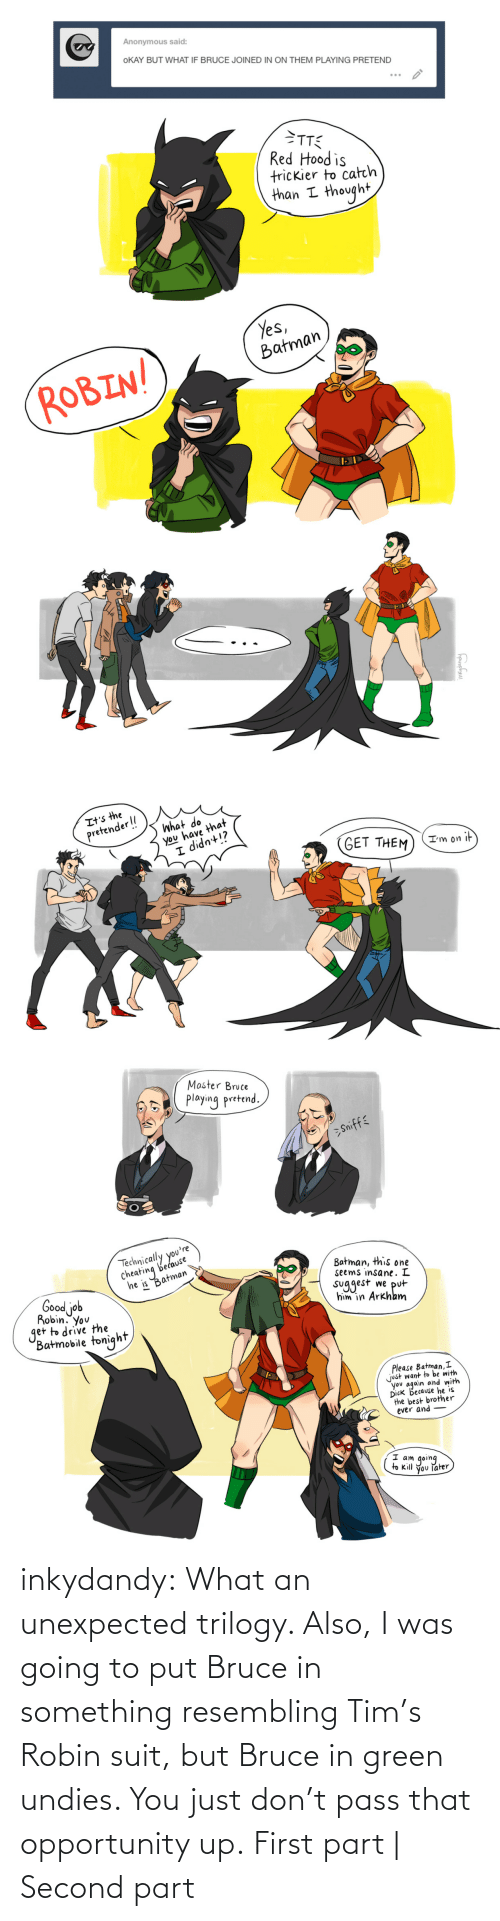 Okay: inkydandy: What an unexpected trilogy. Also, I was going to put Bruce in something resembling Tim's Robin suit, but Bruce in green undies. You just don't pass that opportunity up. First part | Second part